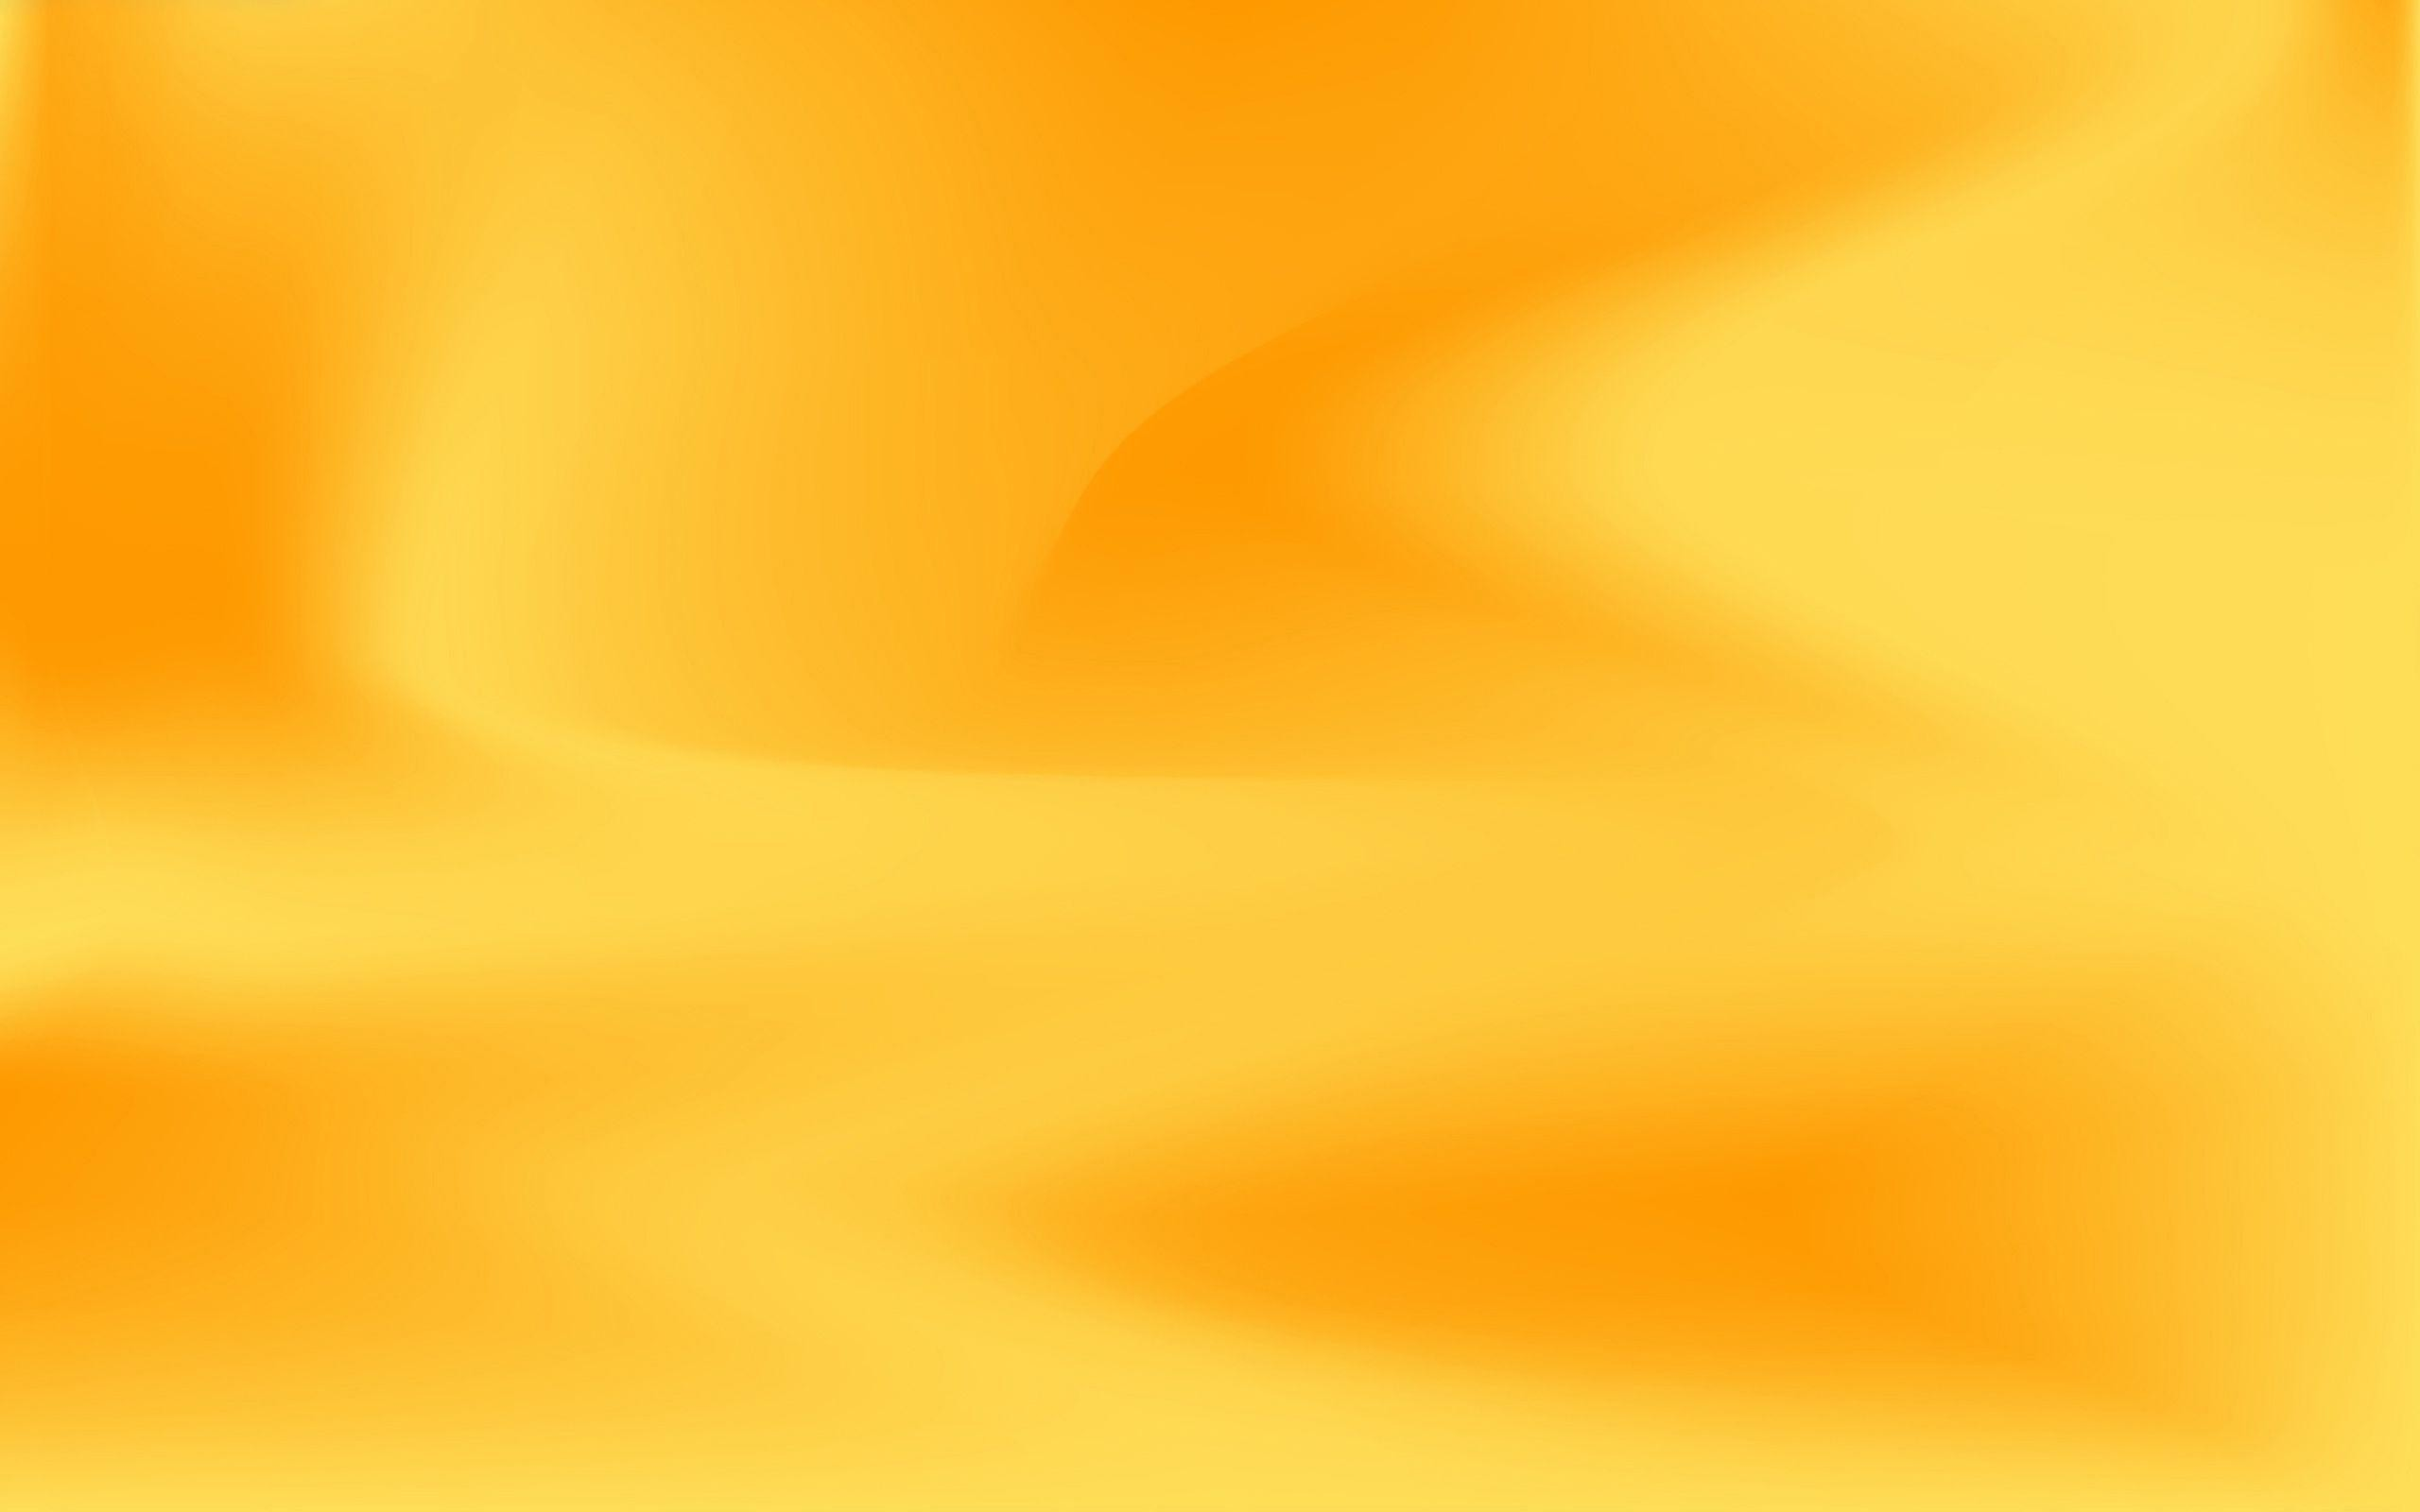 Wallpapers For > Cool Red And Orange Background